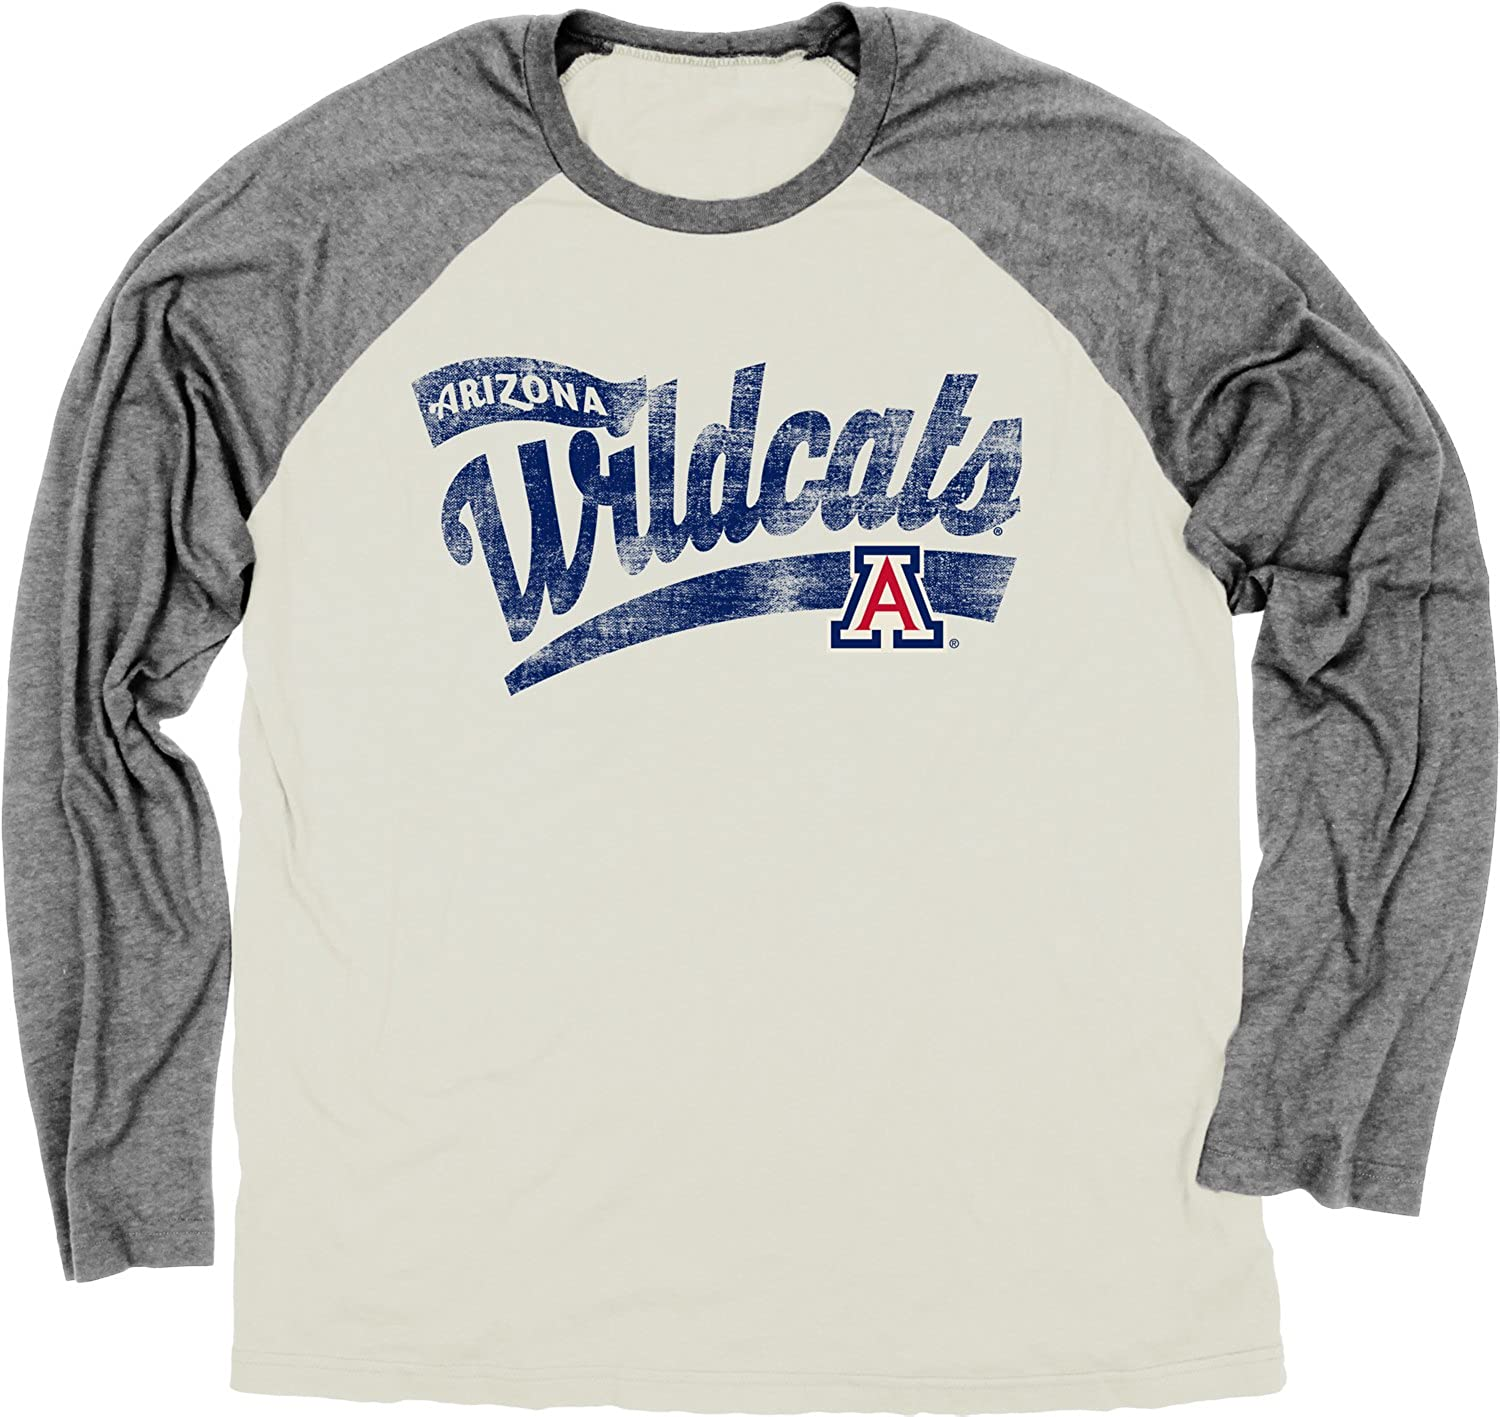 Blue 84 Adult Unisexs NCAA Mens Dyed Long Sleeve Raglan